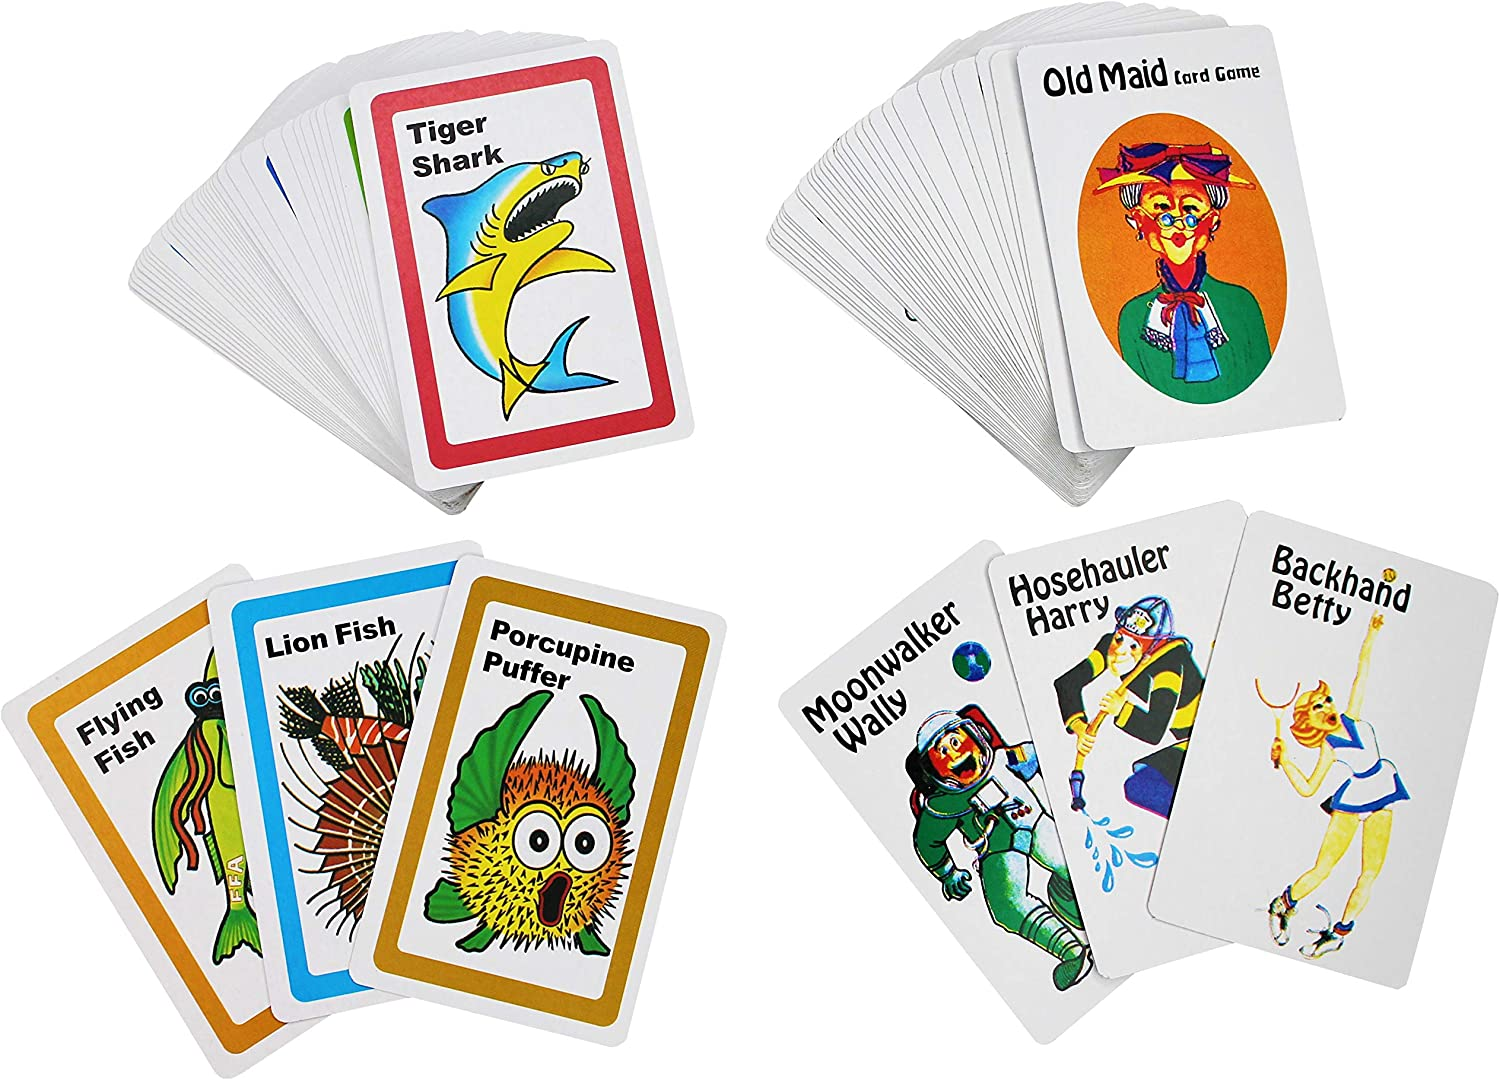 Dora the Explorer Go Fish and Old Maid Card Games in Tin